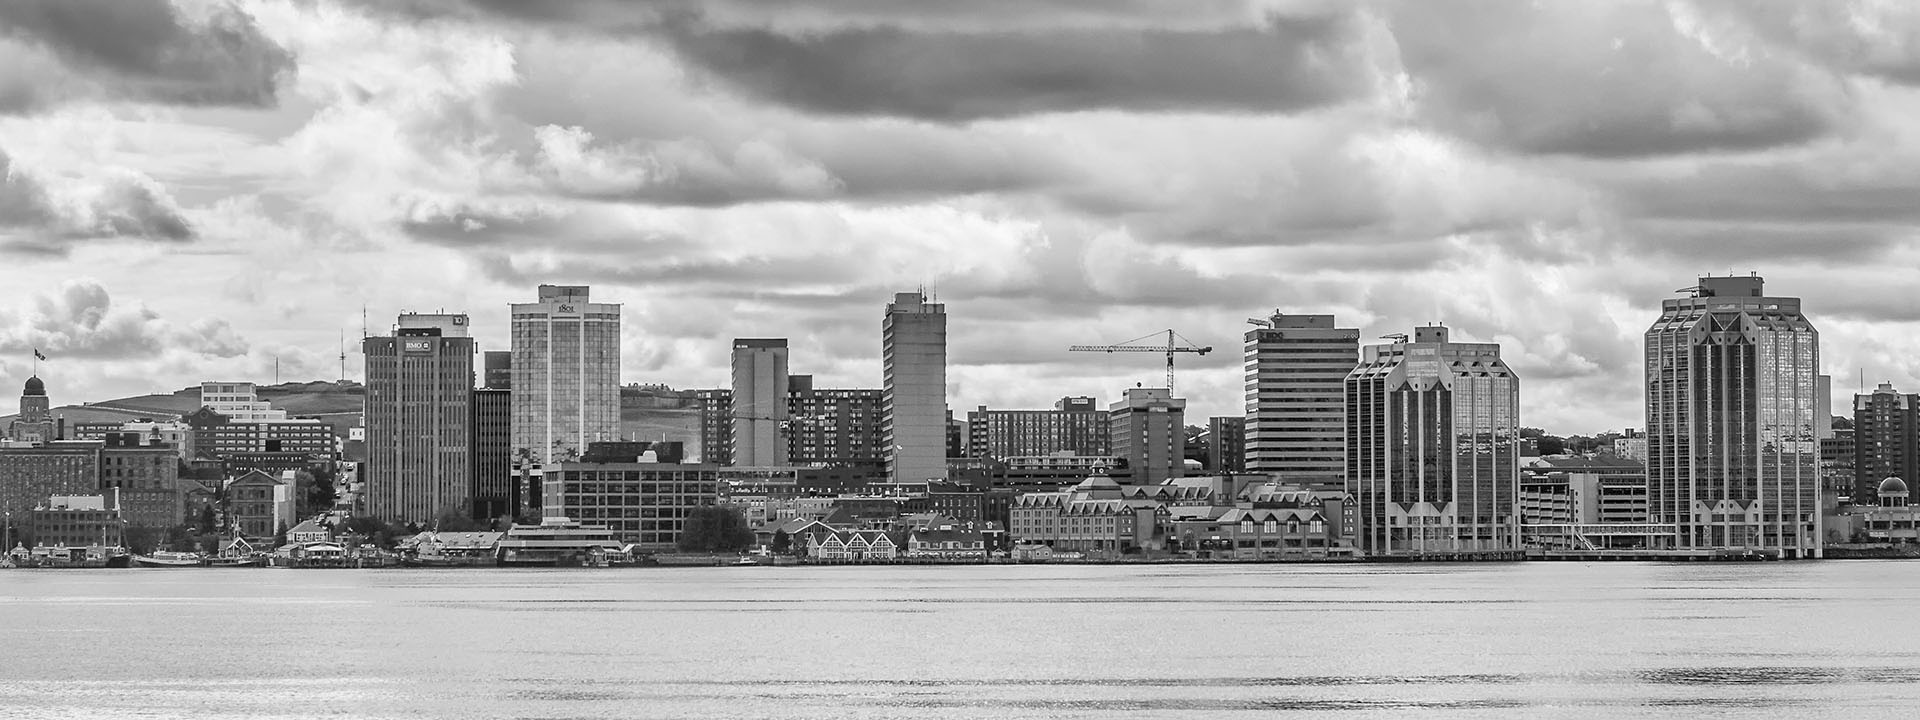 20160217-hfx_waterfront-1920